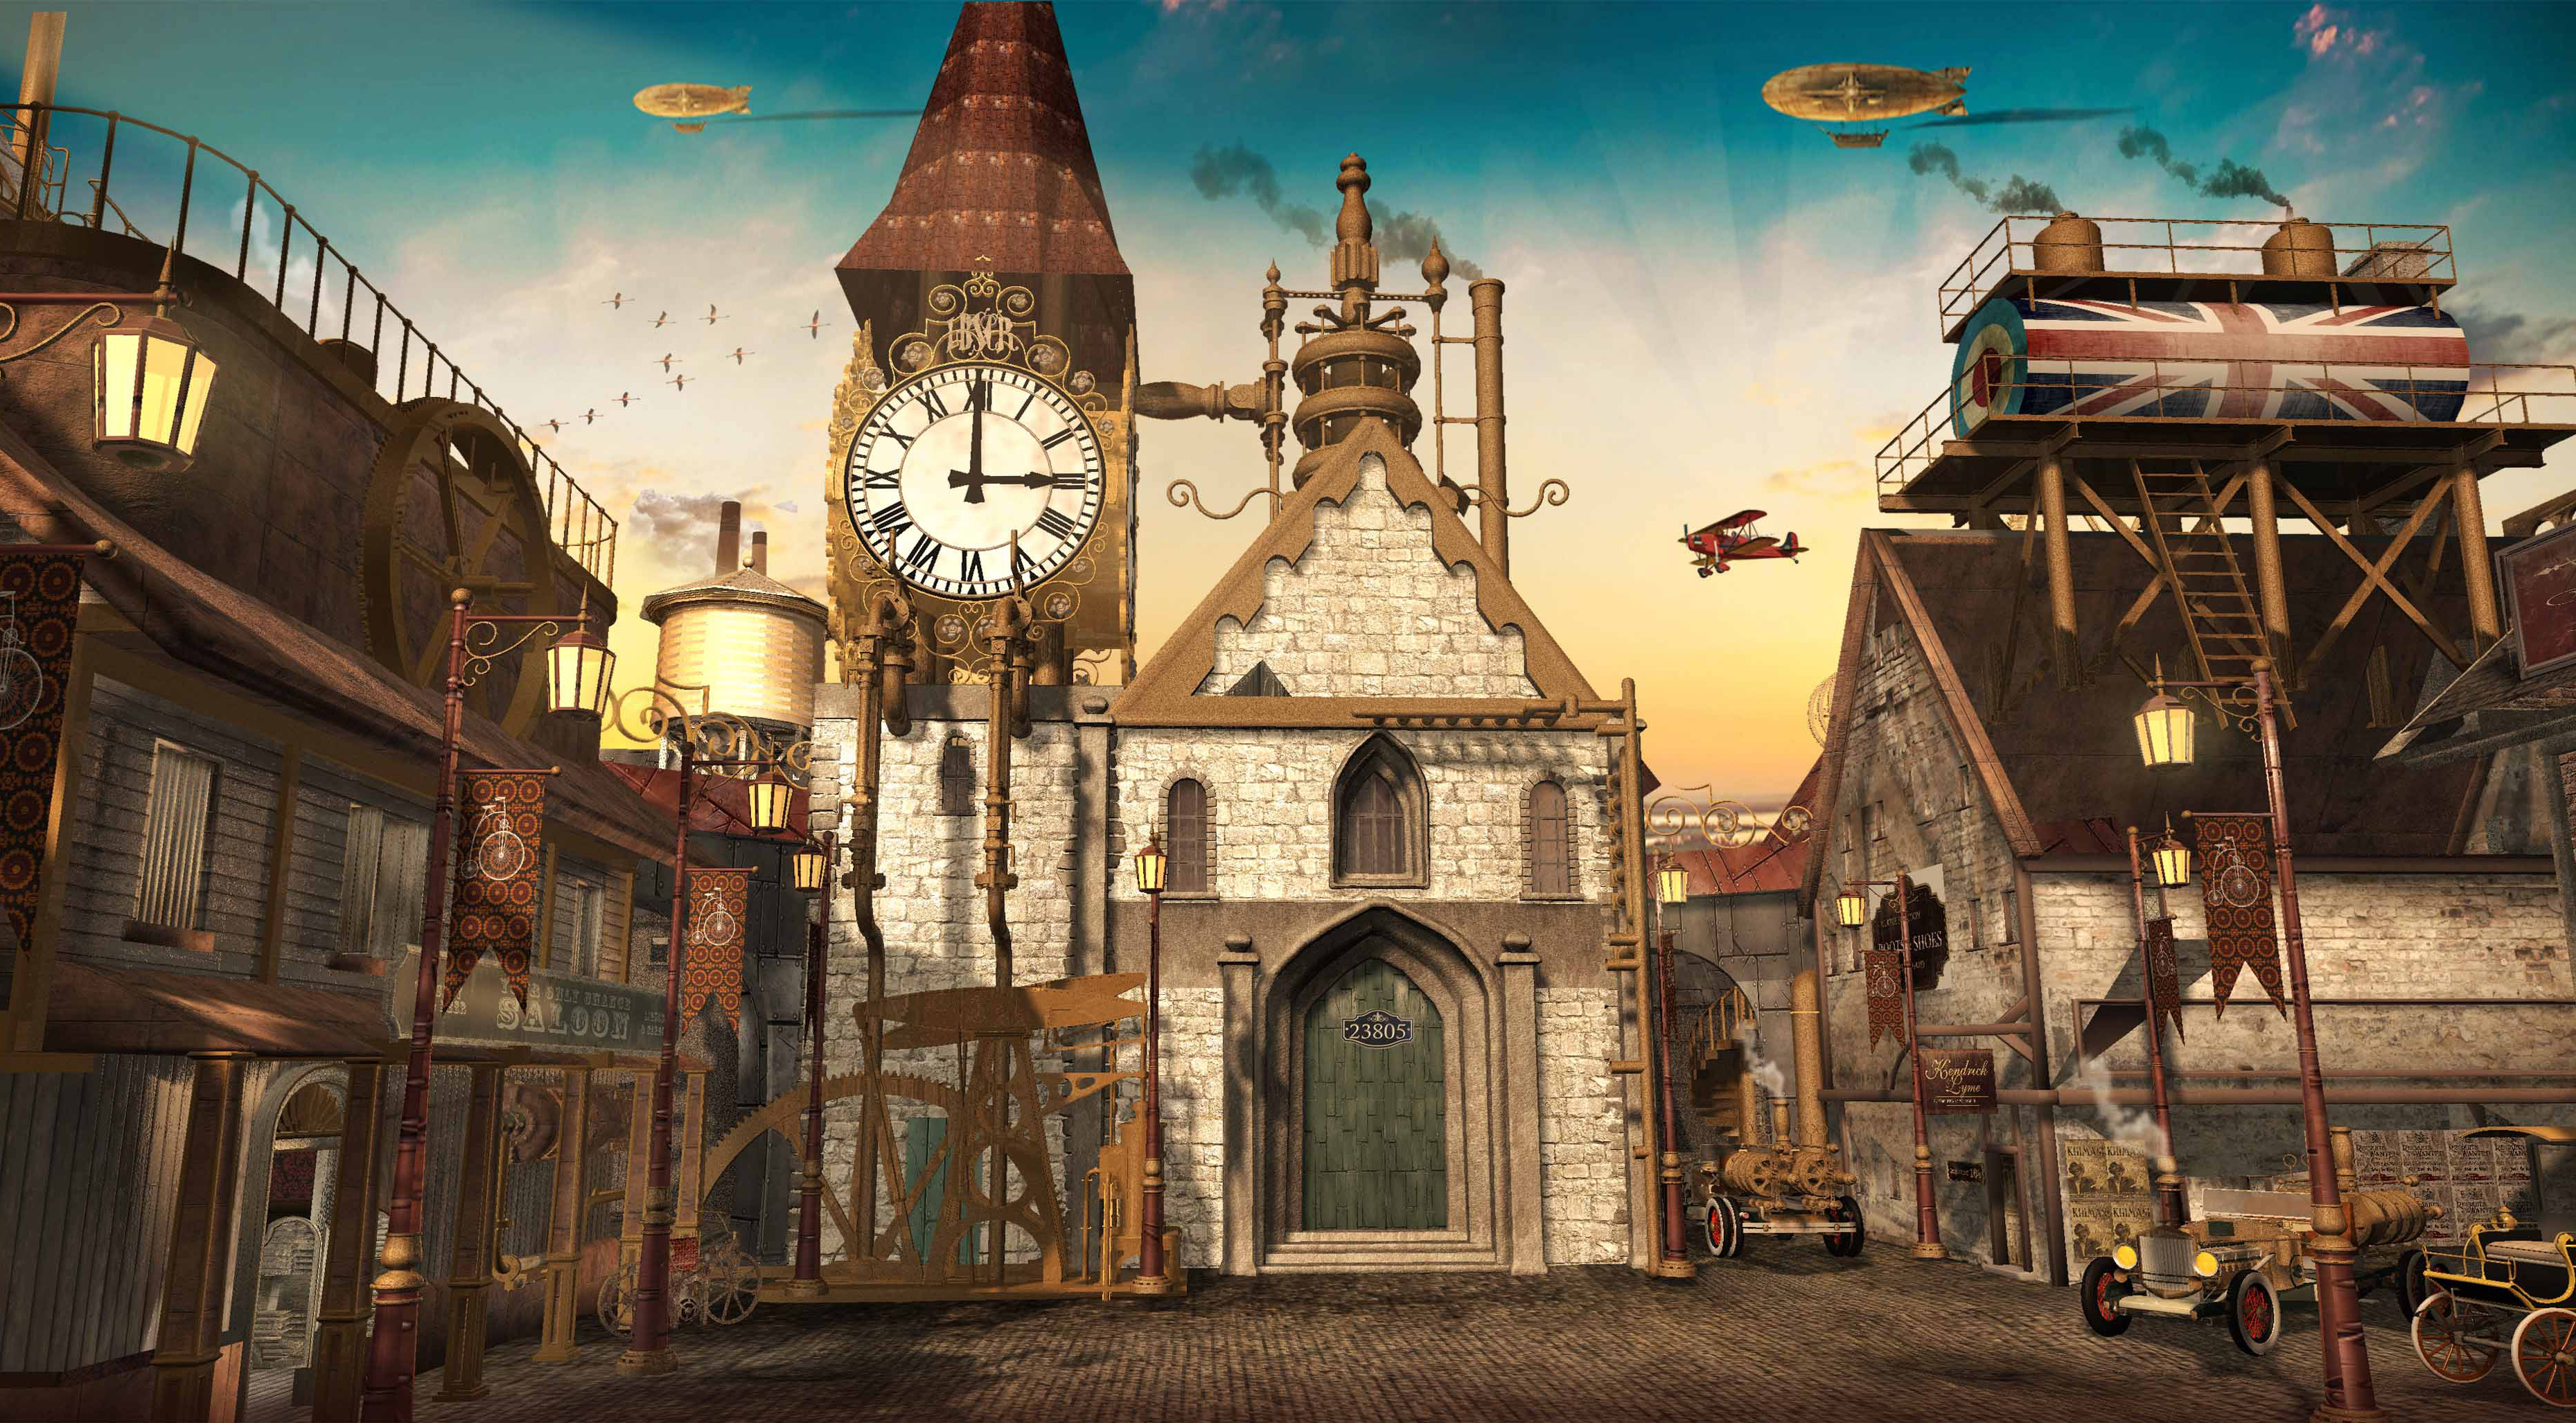 2D / 3D Land of the Lost Stories Marketplace - Once Upon  a Time Season 5